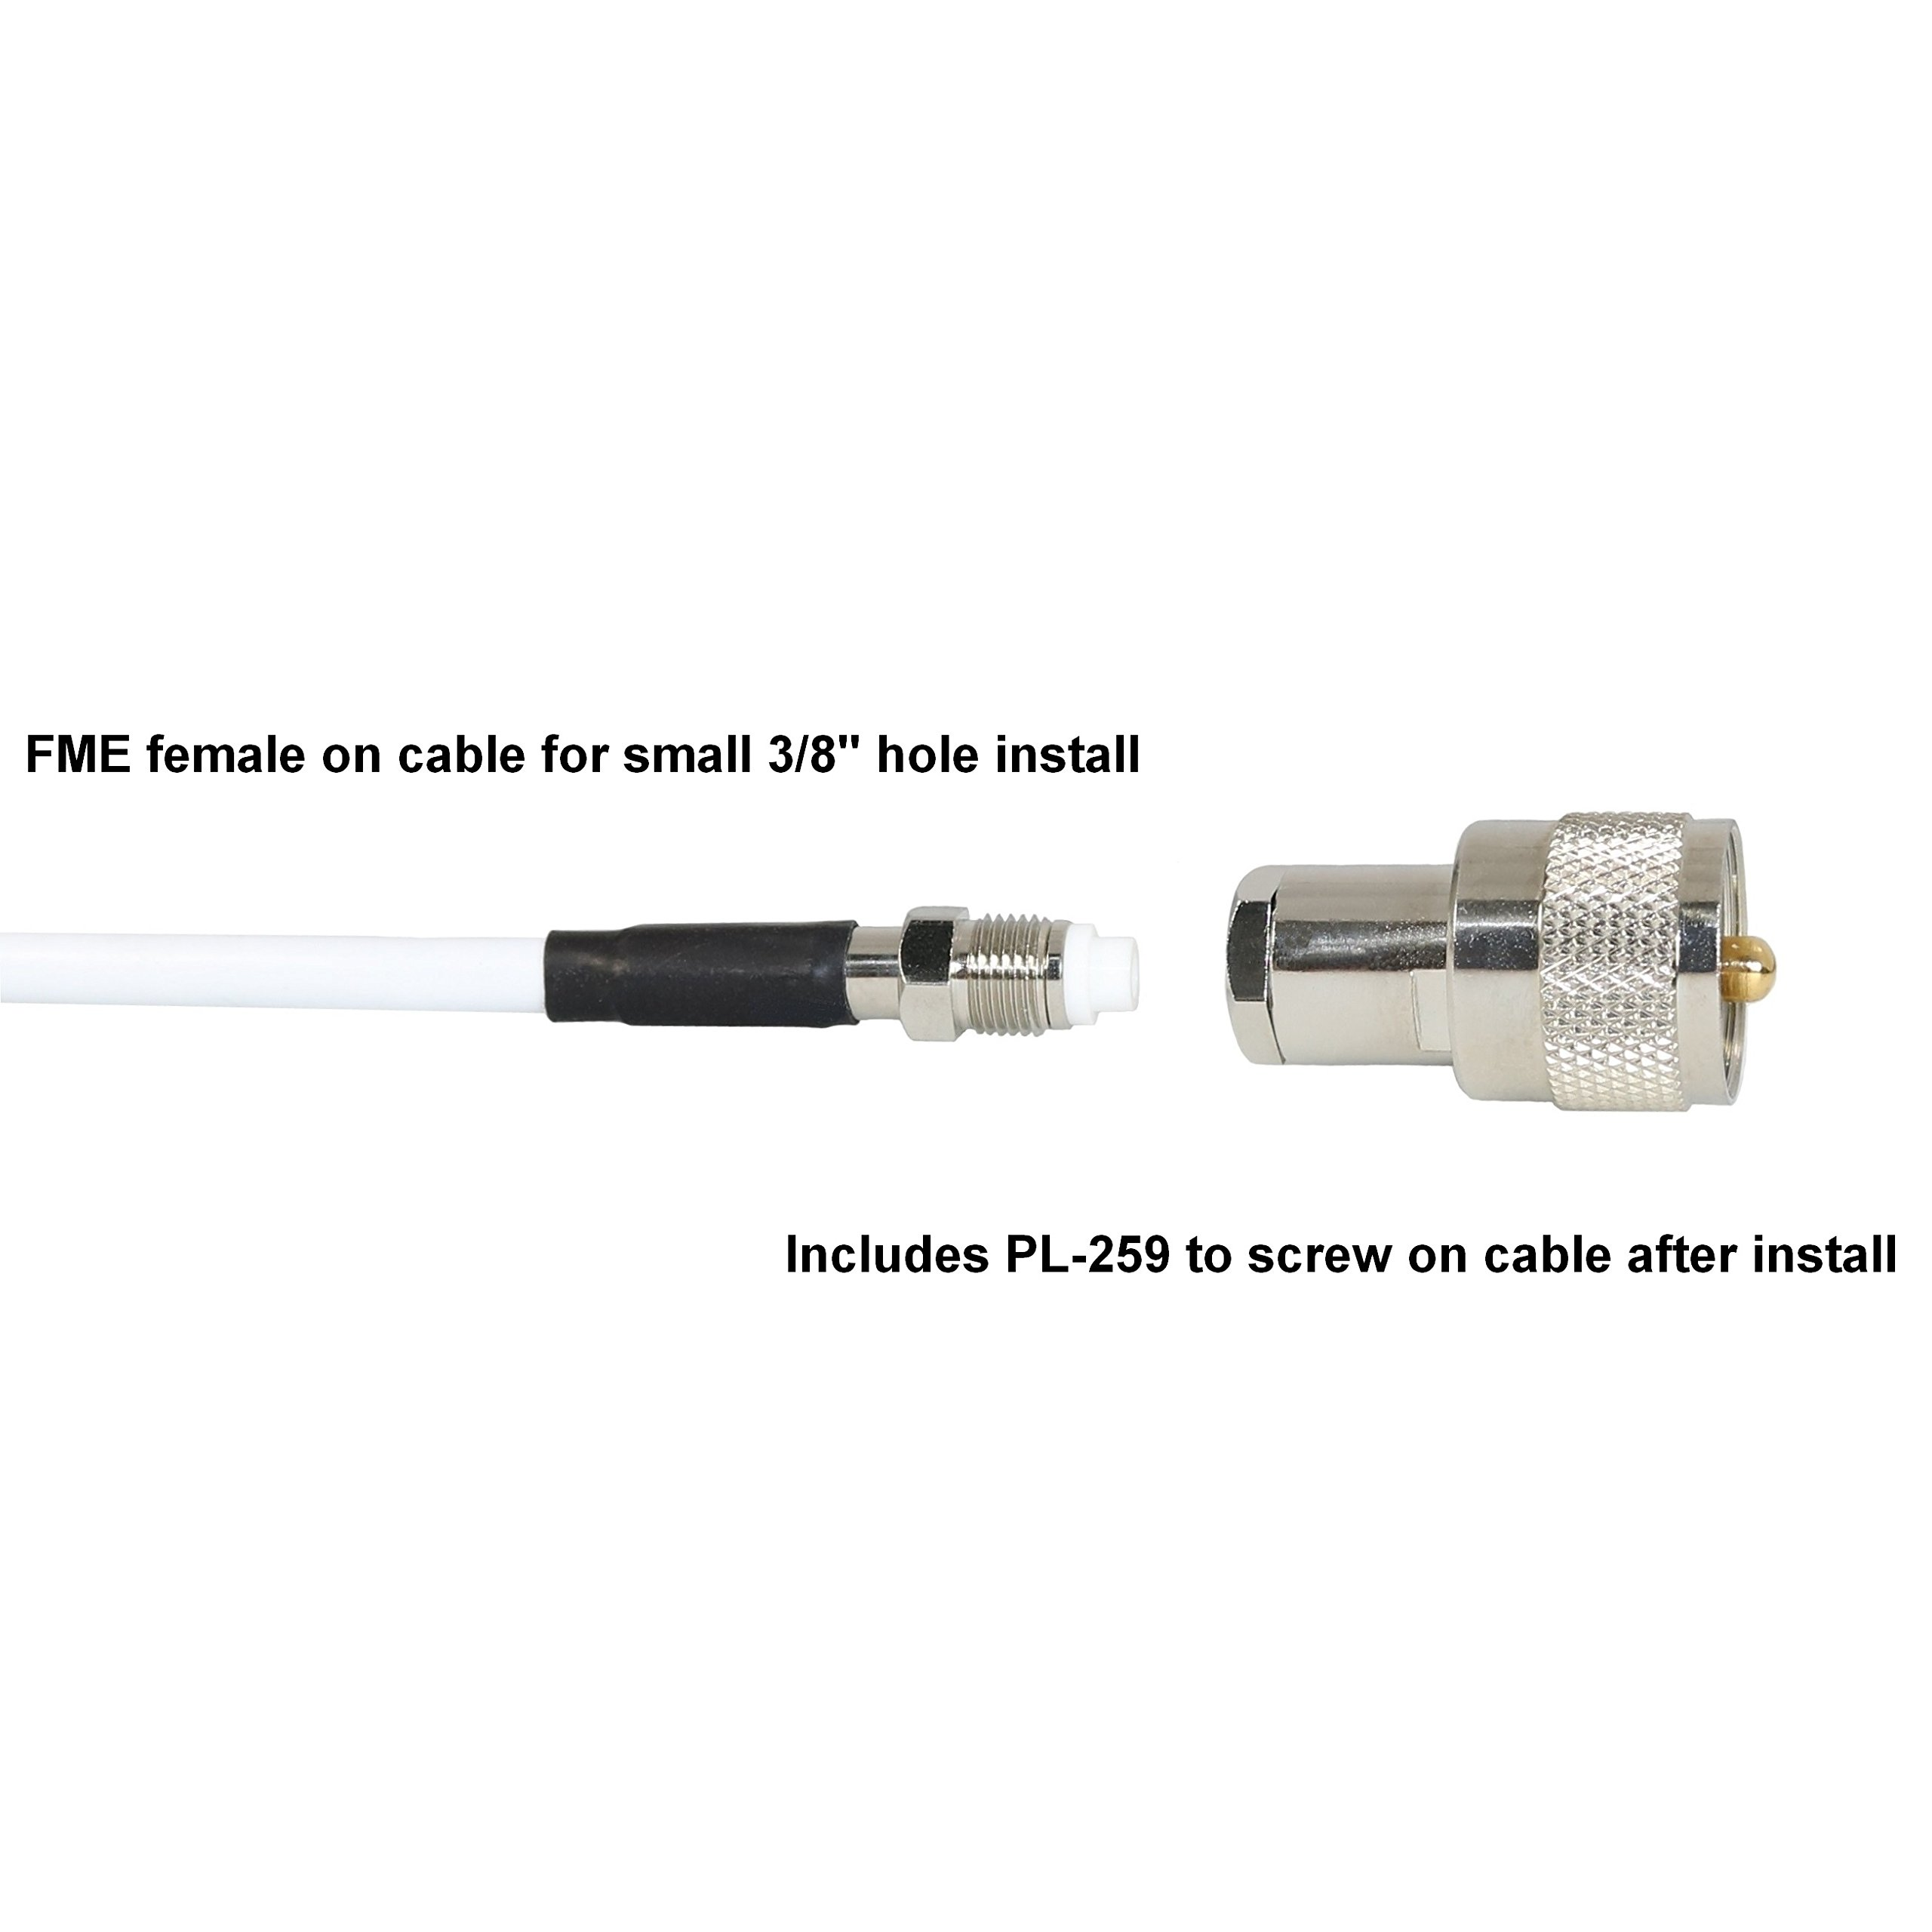 TRAM(R) 1614 46'' VHF 3 Dbd Gain Marine Antenna with Cable Built-in to Ratchet Mount, Silver by TRAM(R) (Image #2)